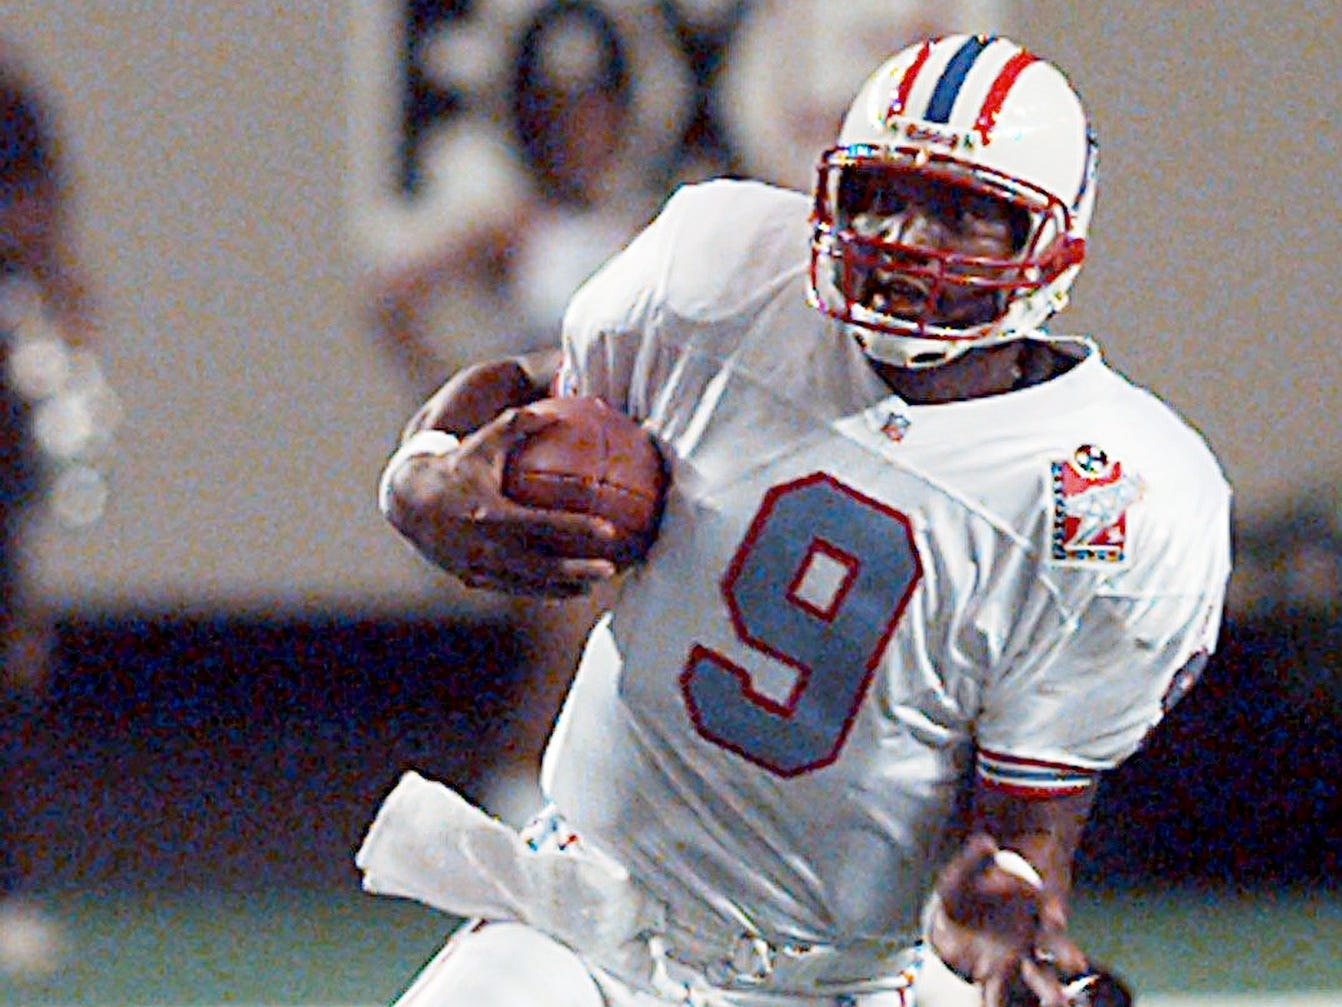 Tennessee Oiler quarterback Steve McNair (9) tucks the ball and runs during their game against the Atlanta Falcons Aug. 7, 1998 in a preseason game.